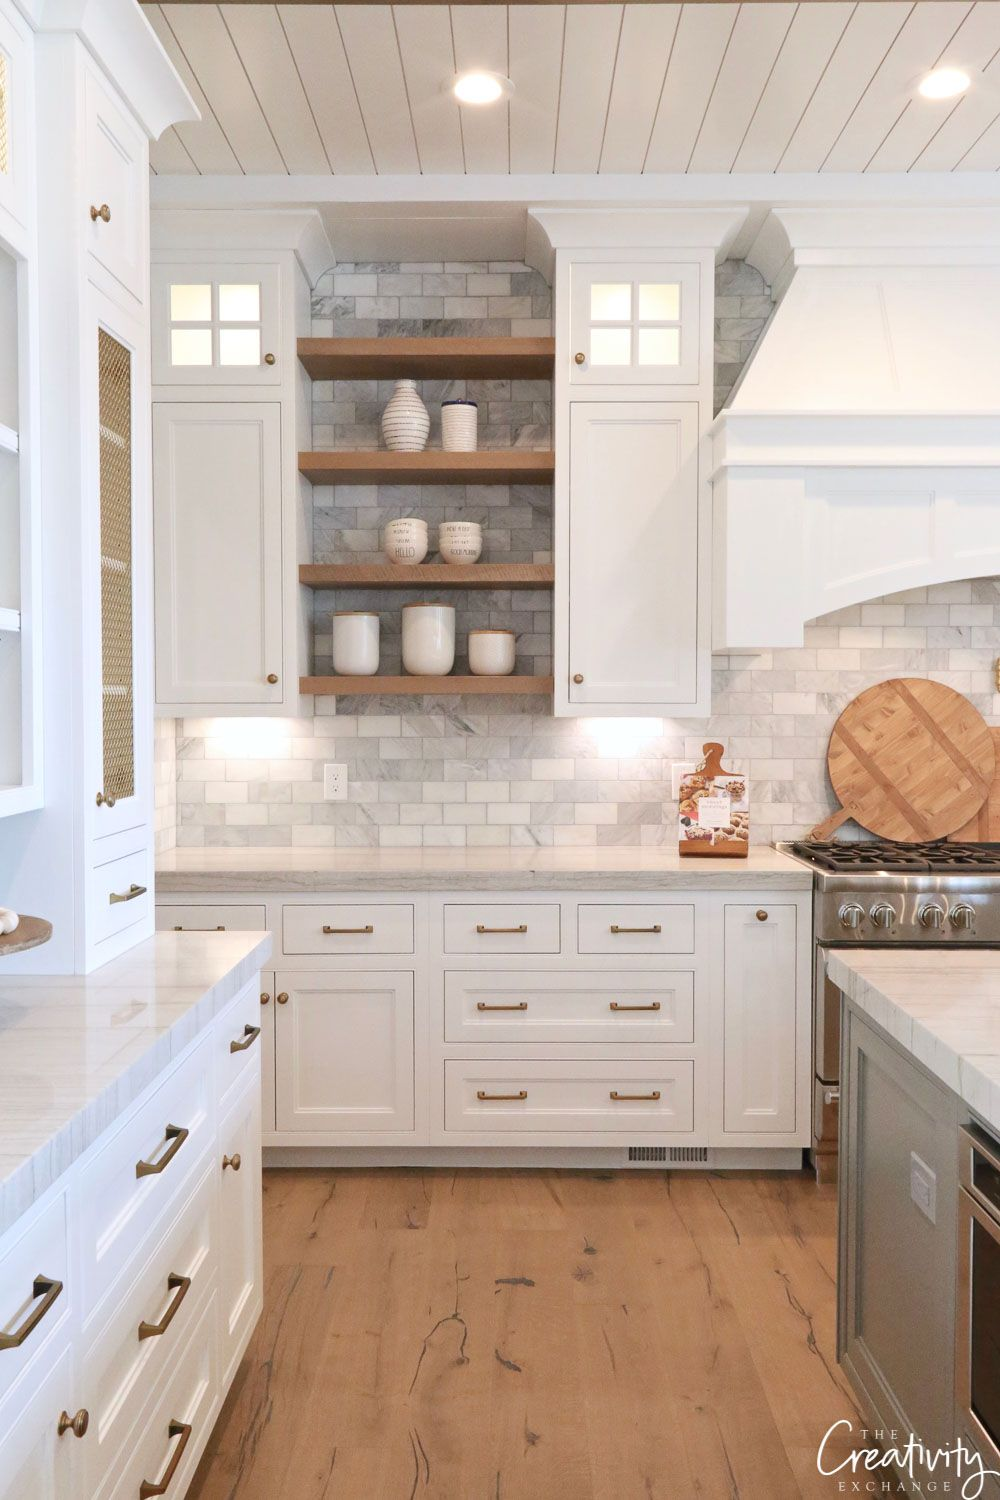 Modern European Meets Farmhouse Dream Kitchen #beautifulhomes